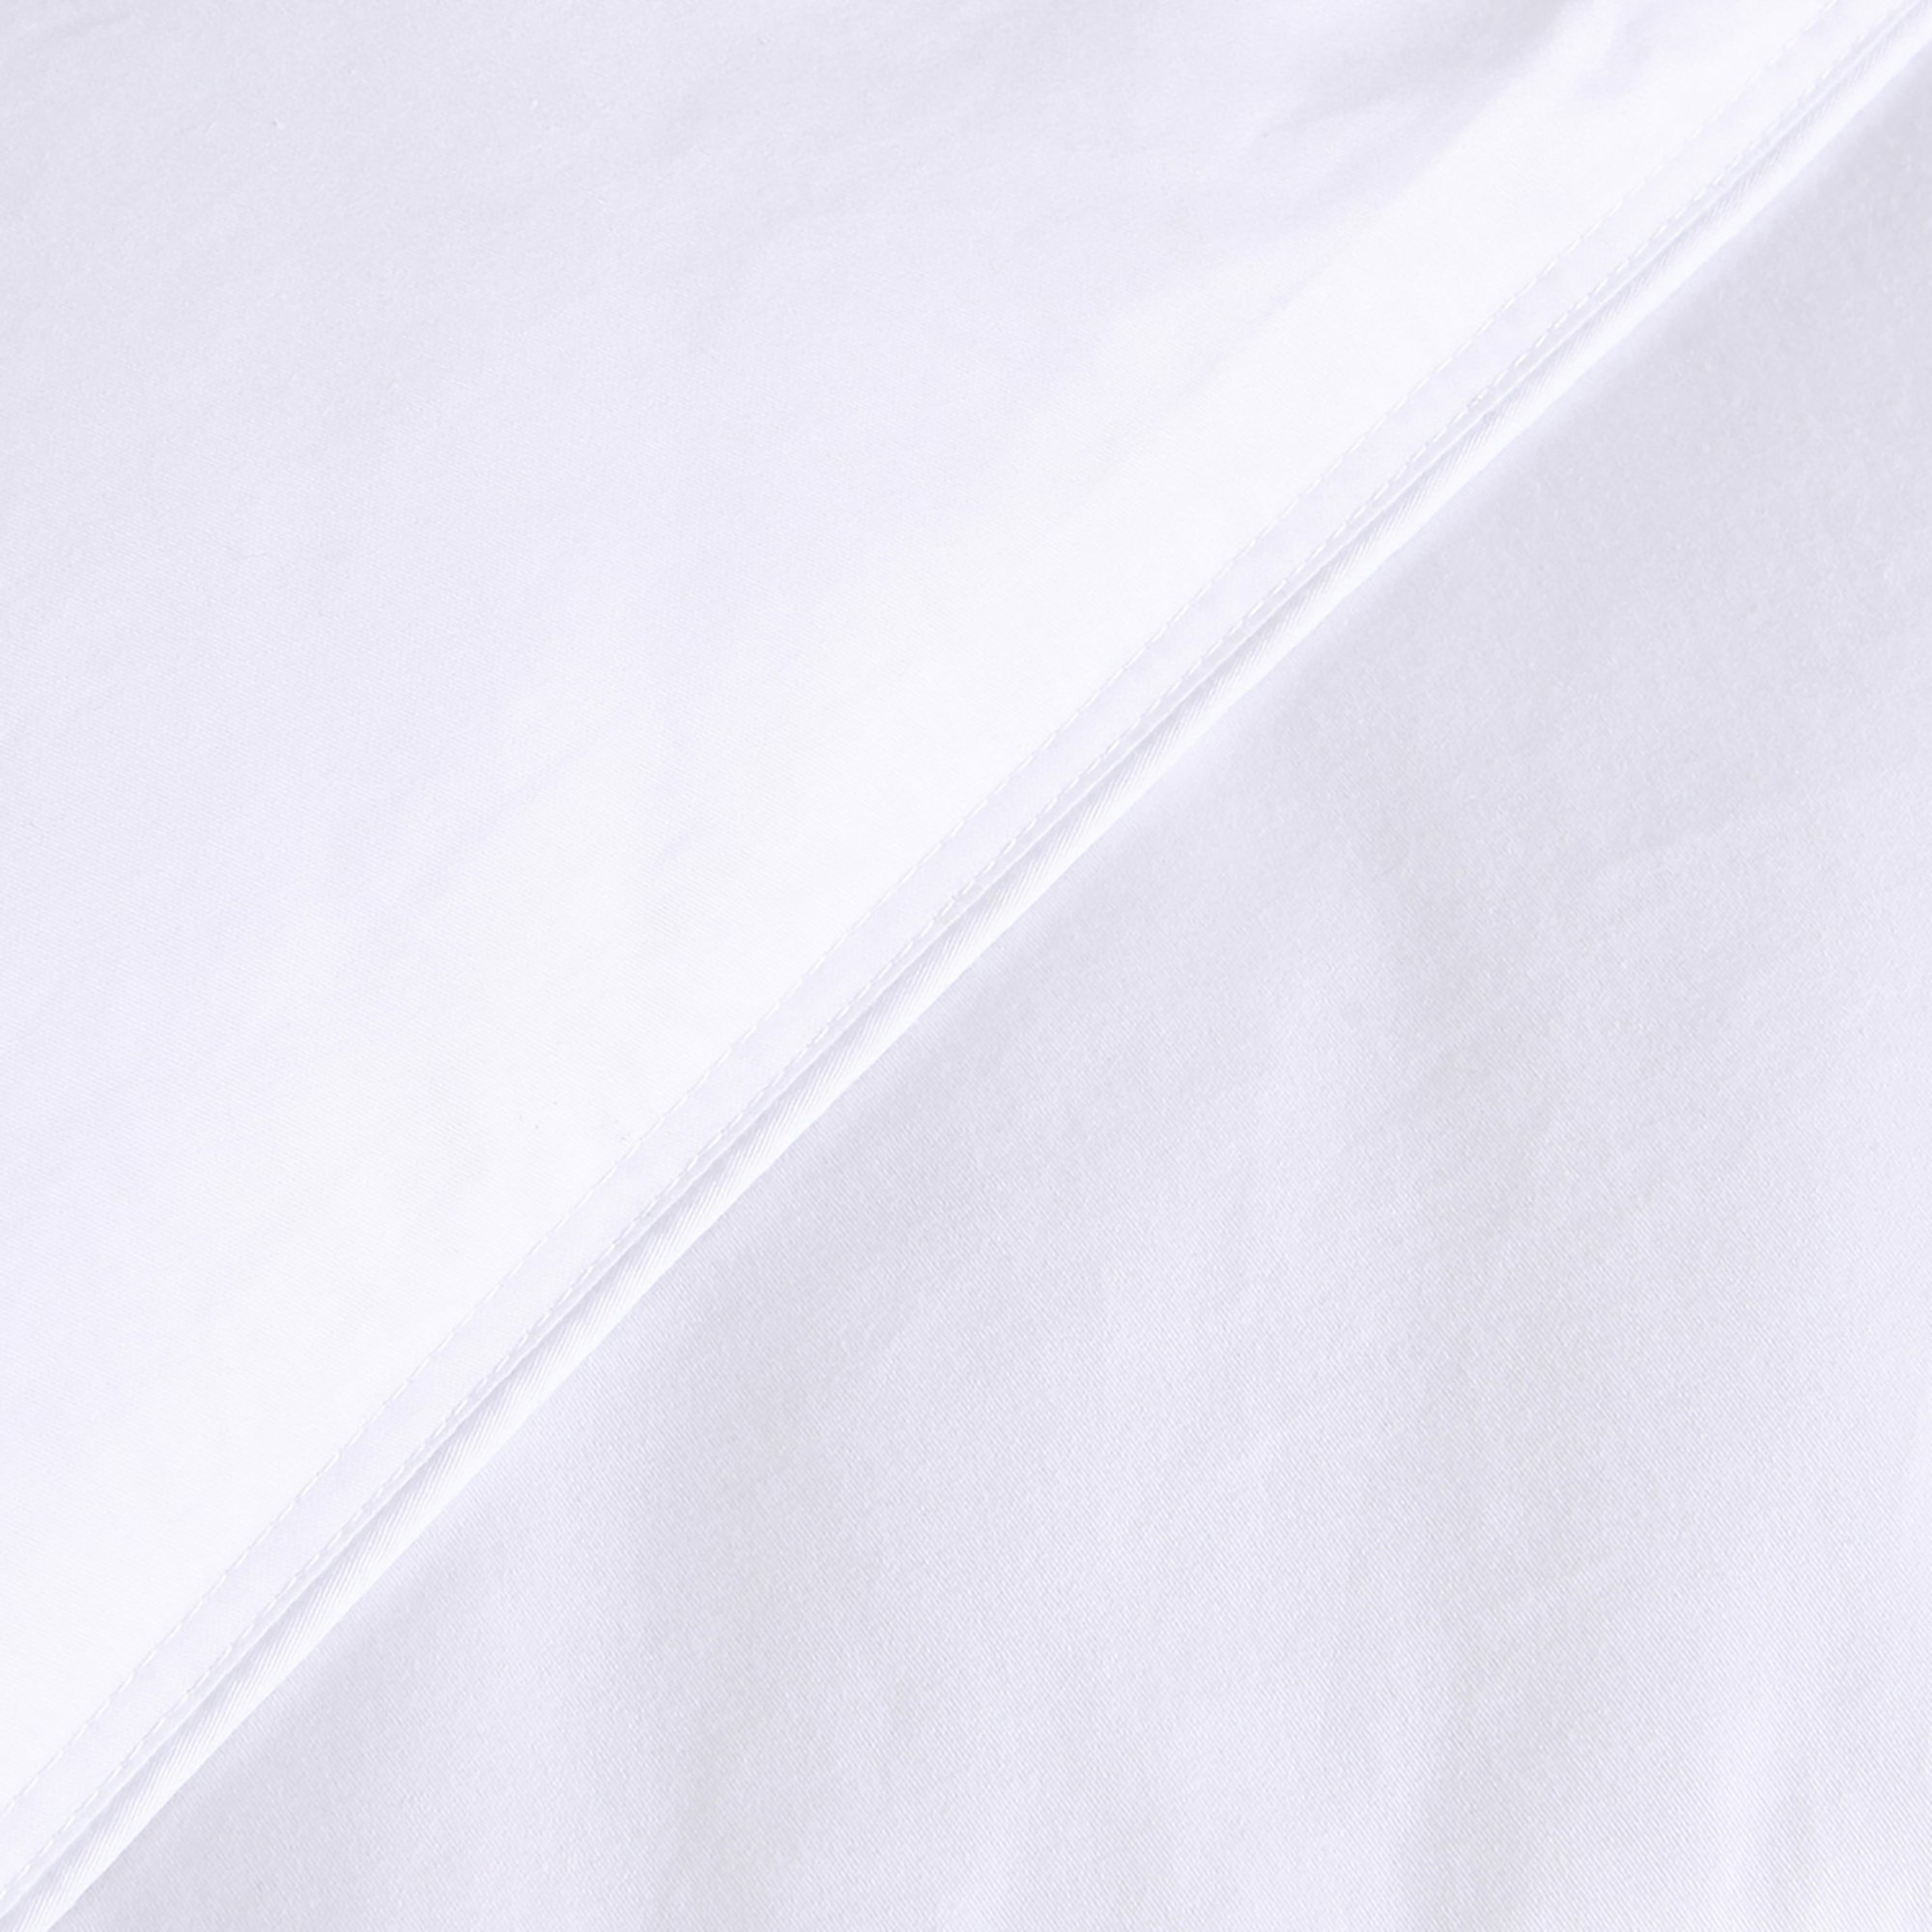 puredown Lightweight White Goose Down Comforter Duvet Insert 300 Thread Count 100% Cotton Fabric 600 Fill Power Down Down Conforter, Full/Queen, by puredown (Image #5)